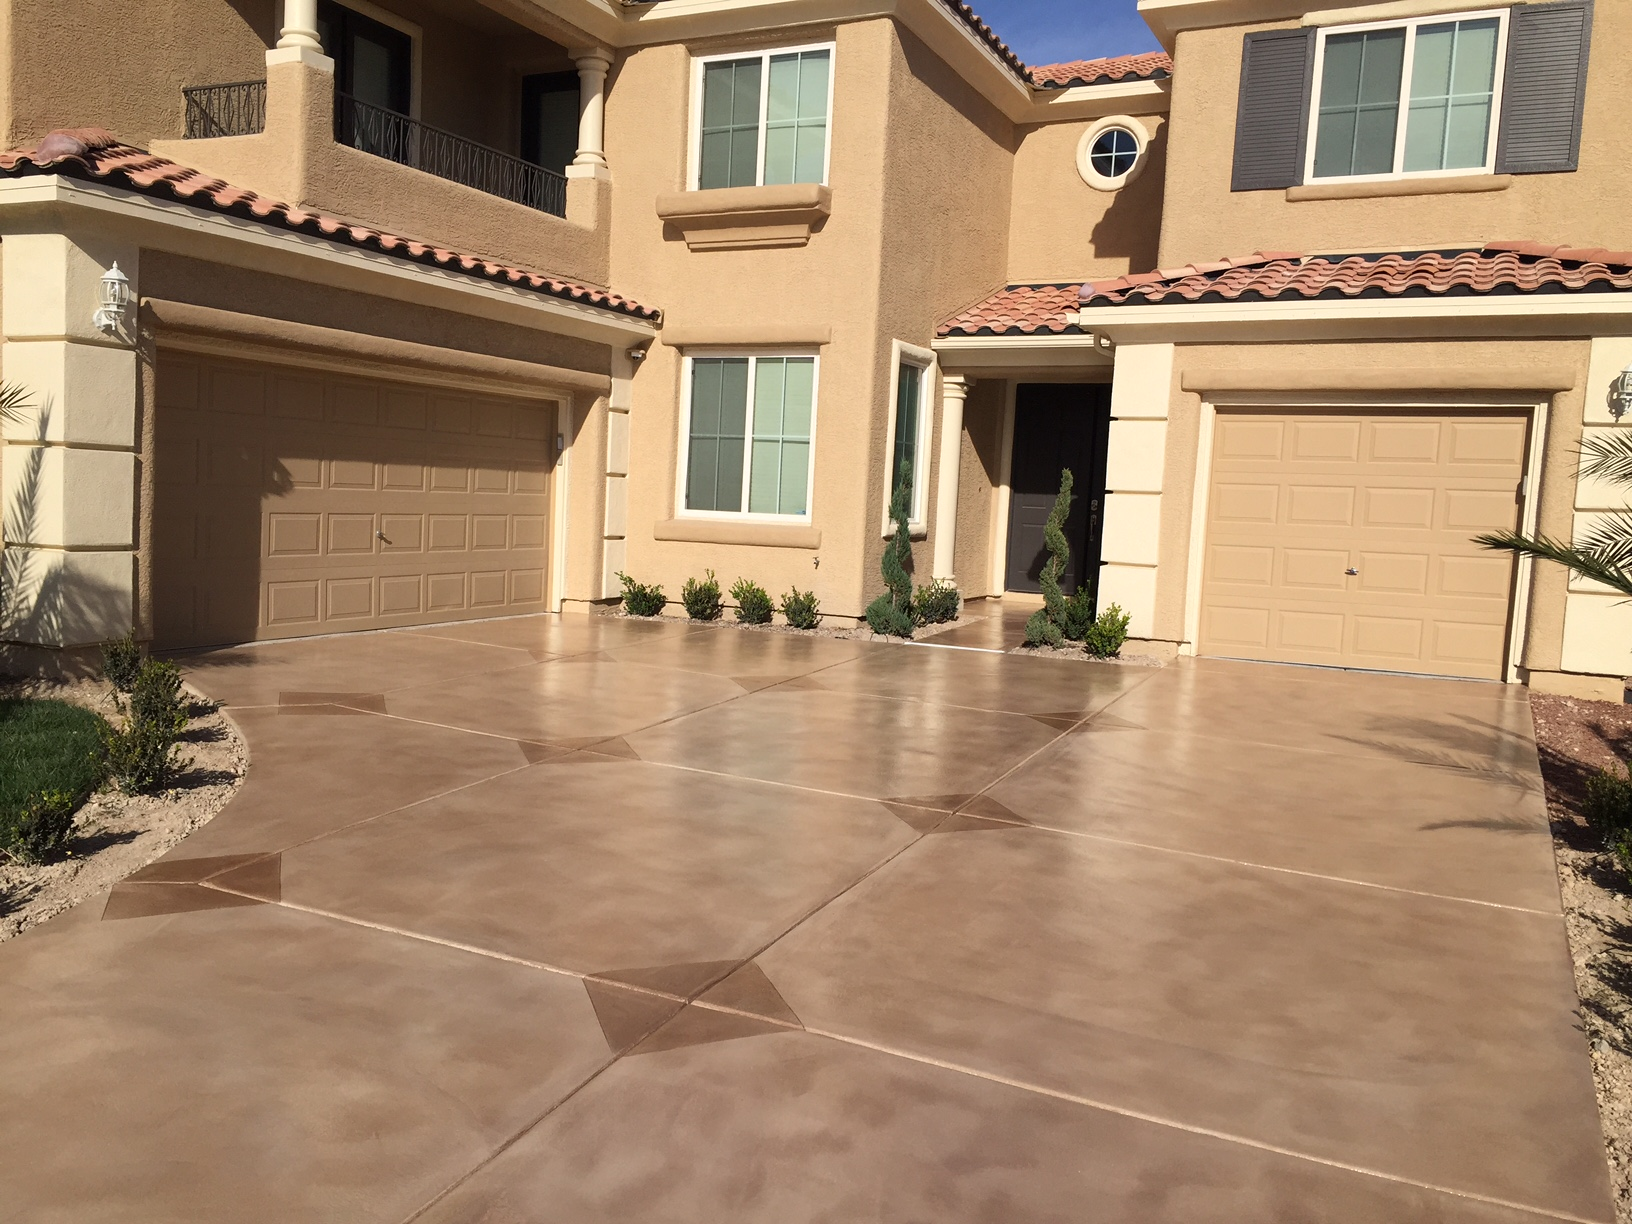 100% Of All Decorative Concrete Surfaces Must Be Maintained With A Periodic  Seal Coat. Weather, Sun, Traffic, And Water Will Gradually Deteriorate The  Seal ...